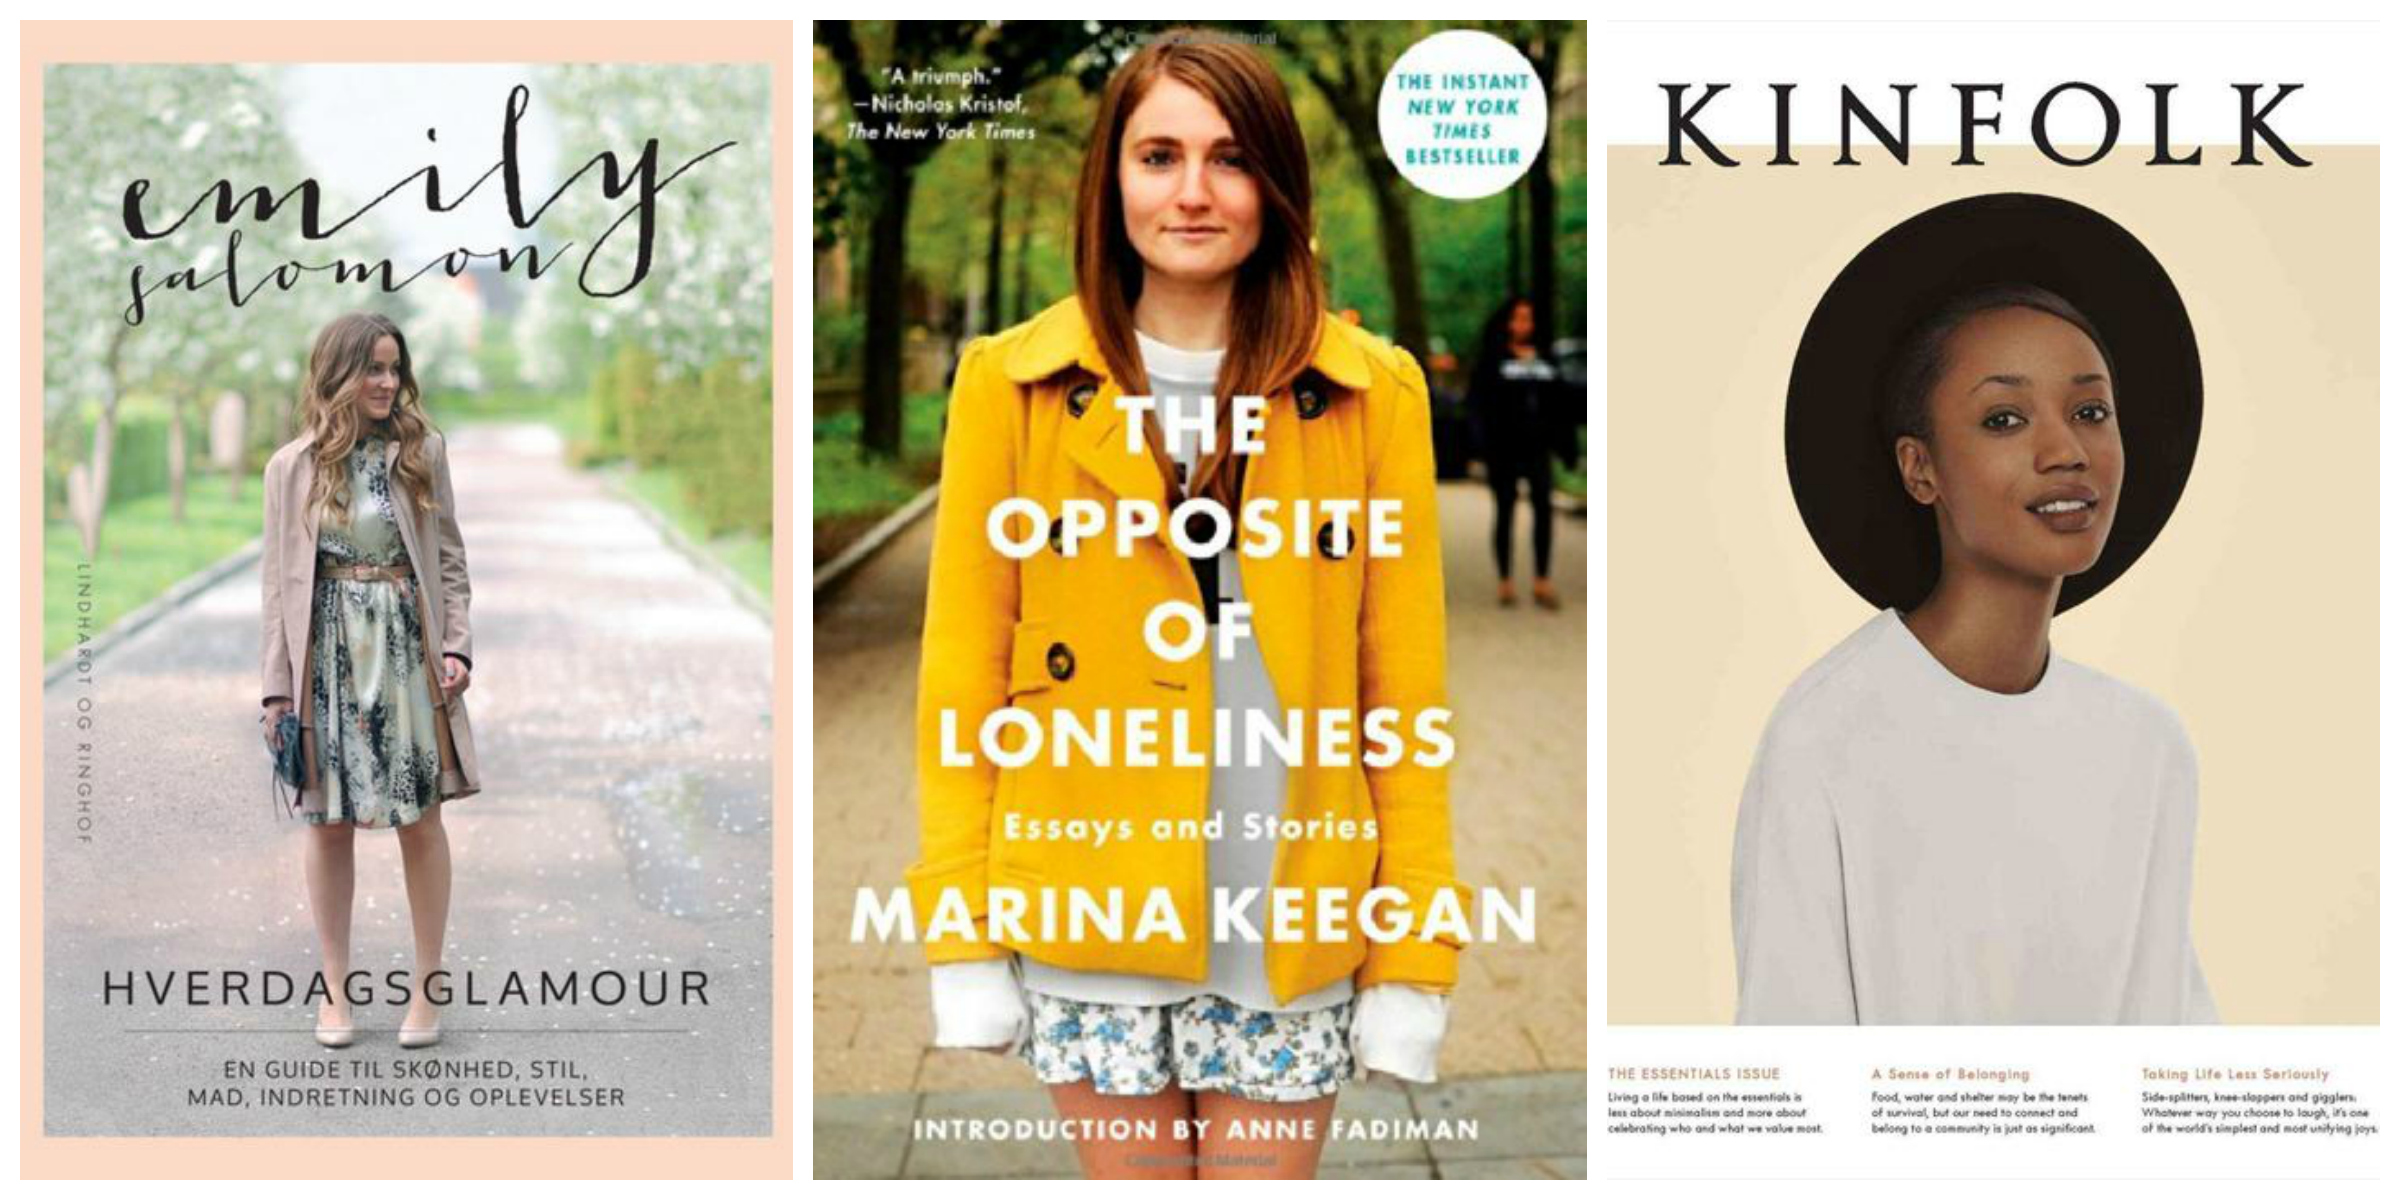 books for summer espresso moments the opposite of loneliness essays stories by marina keegan thanks ciaraelliott for the recommendation 3 kinfolk issue sixteen